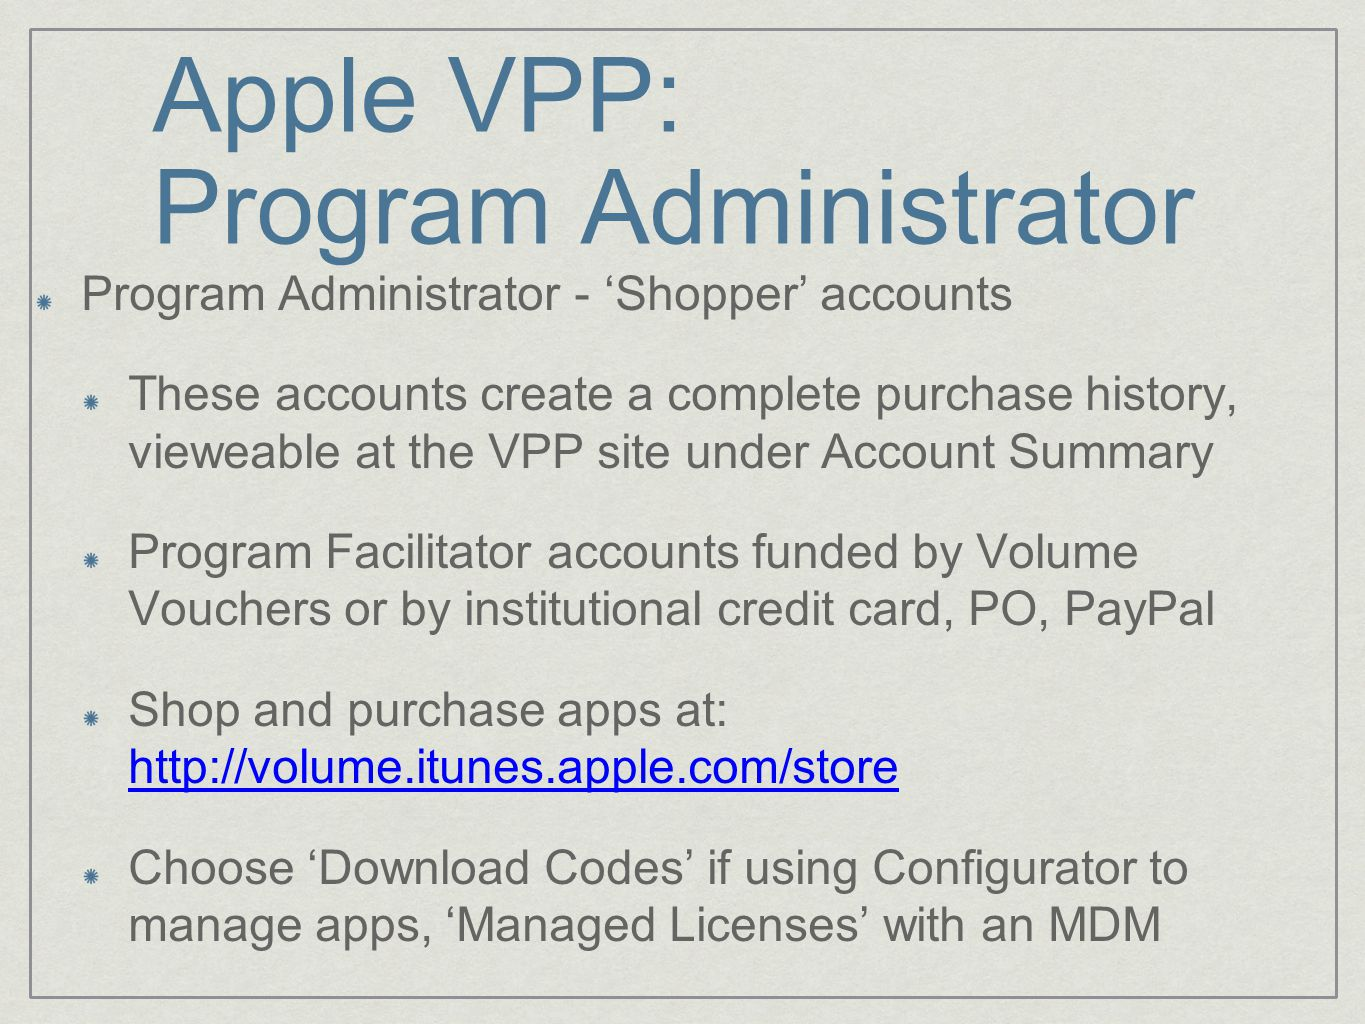 Apple VPP: Program Administrator Program Administrator - 'Shopper' accounts These accounts create a complete purchase history, vieweable at the VPP si